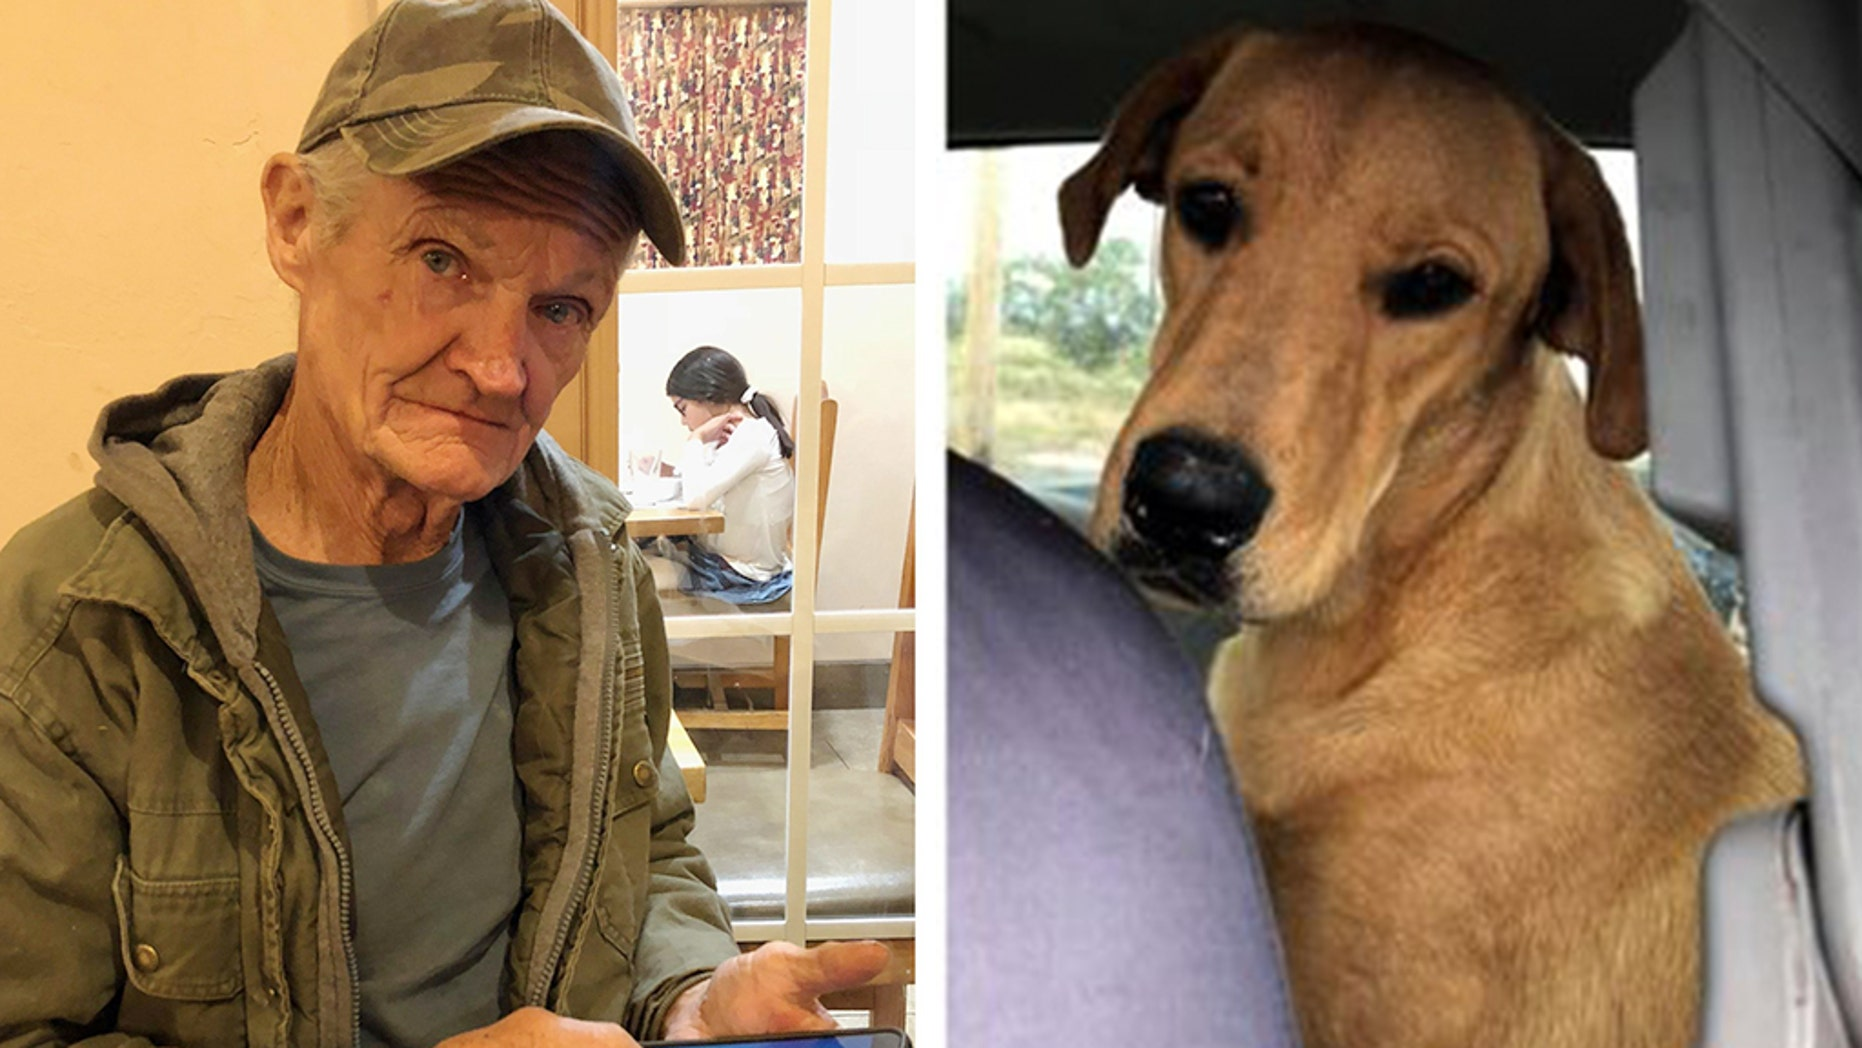 "Sunny ""Tex"" Gilligan, 74, a Doña Ana County resident, told the Las Cruces Sun-News that Charlie and his two other dogs — Scooter and Cowboy — went with him to hunt for jackrabbits in the desert west of Las Cruces on Thursday, Oct. 25. Gilligan was in the driver's seat of his parked pickup truck, along with the dogs, when he was shot."